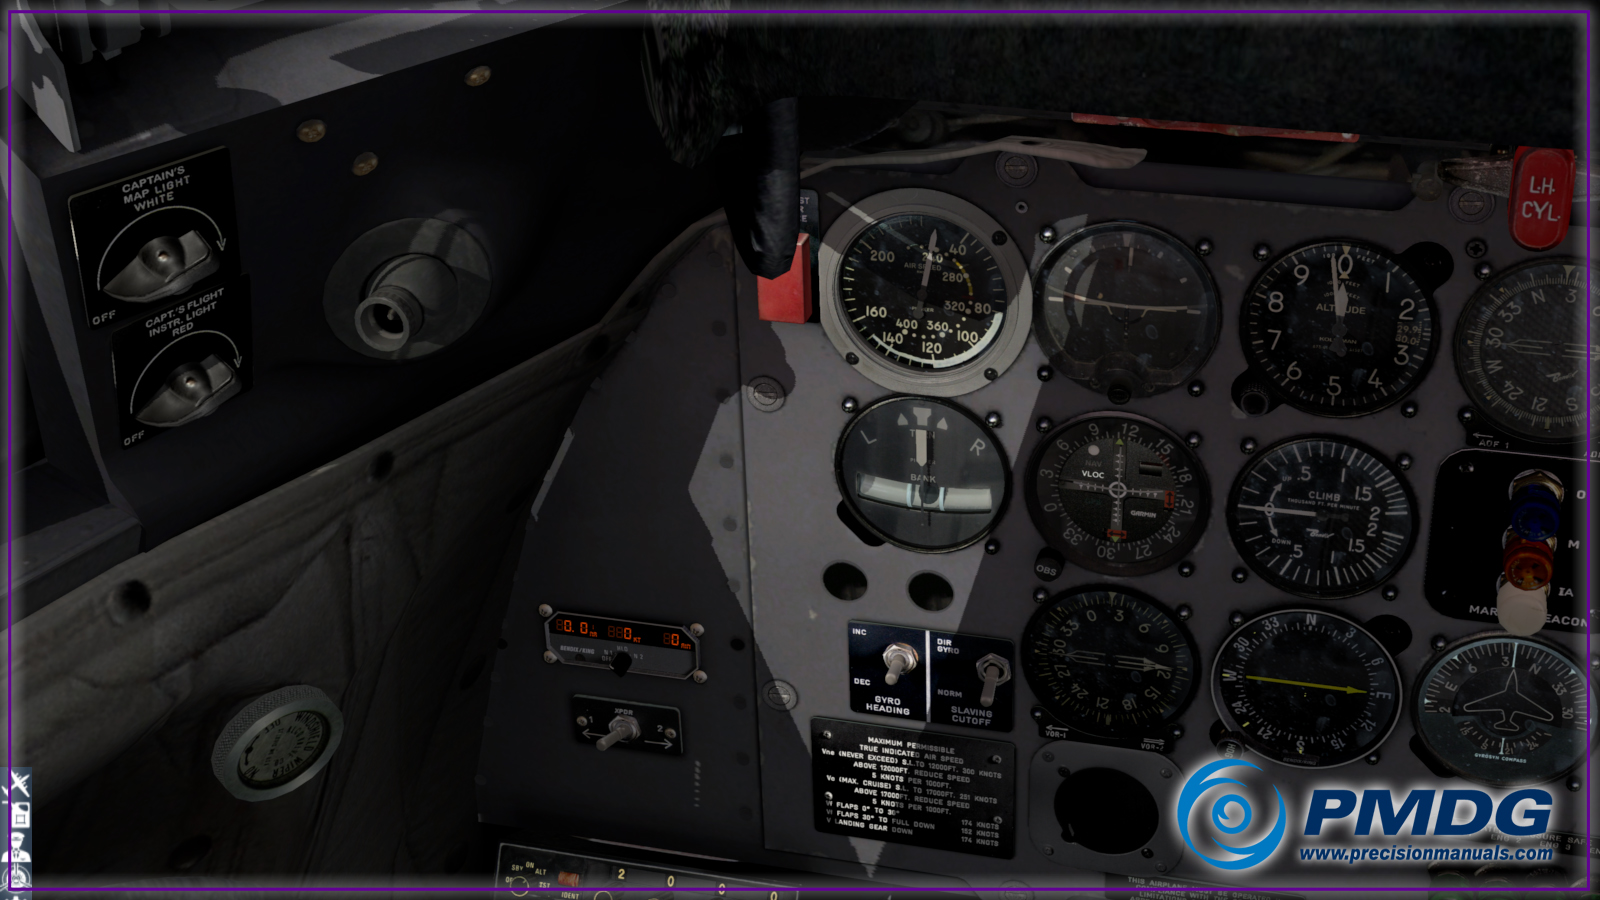 PMDG DC-6 Update - Beta Testing Nearly Finished for X-Plane